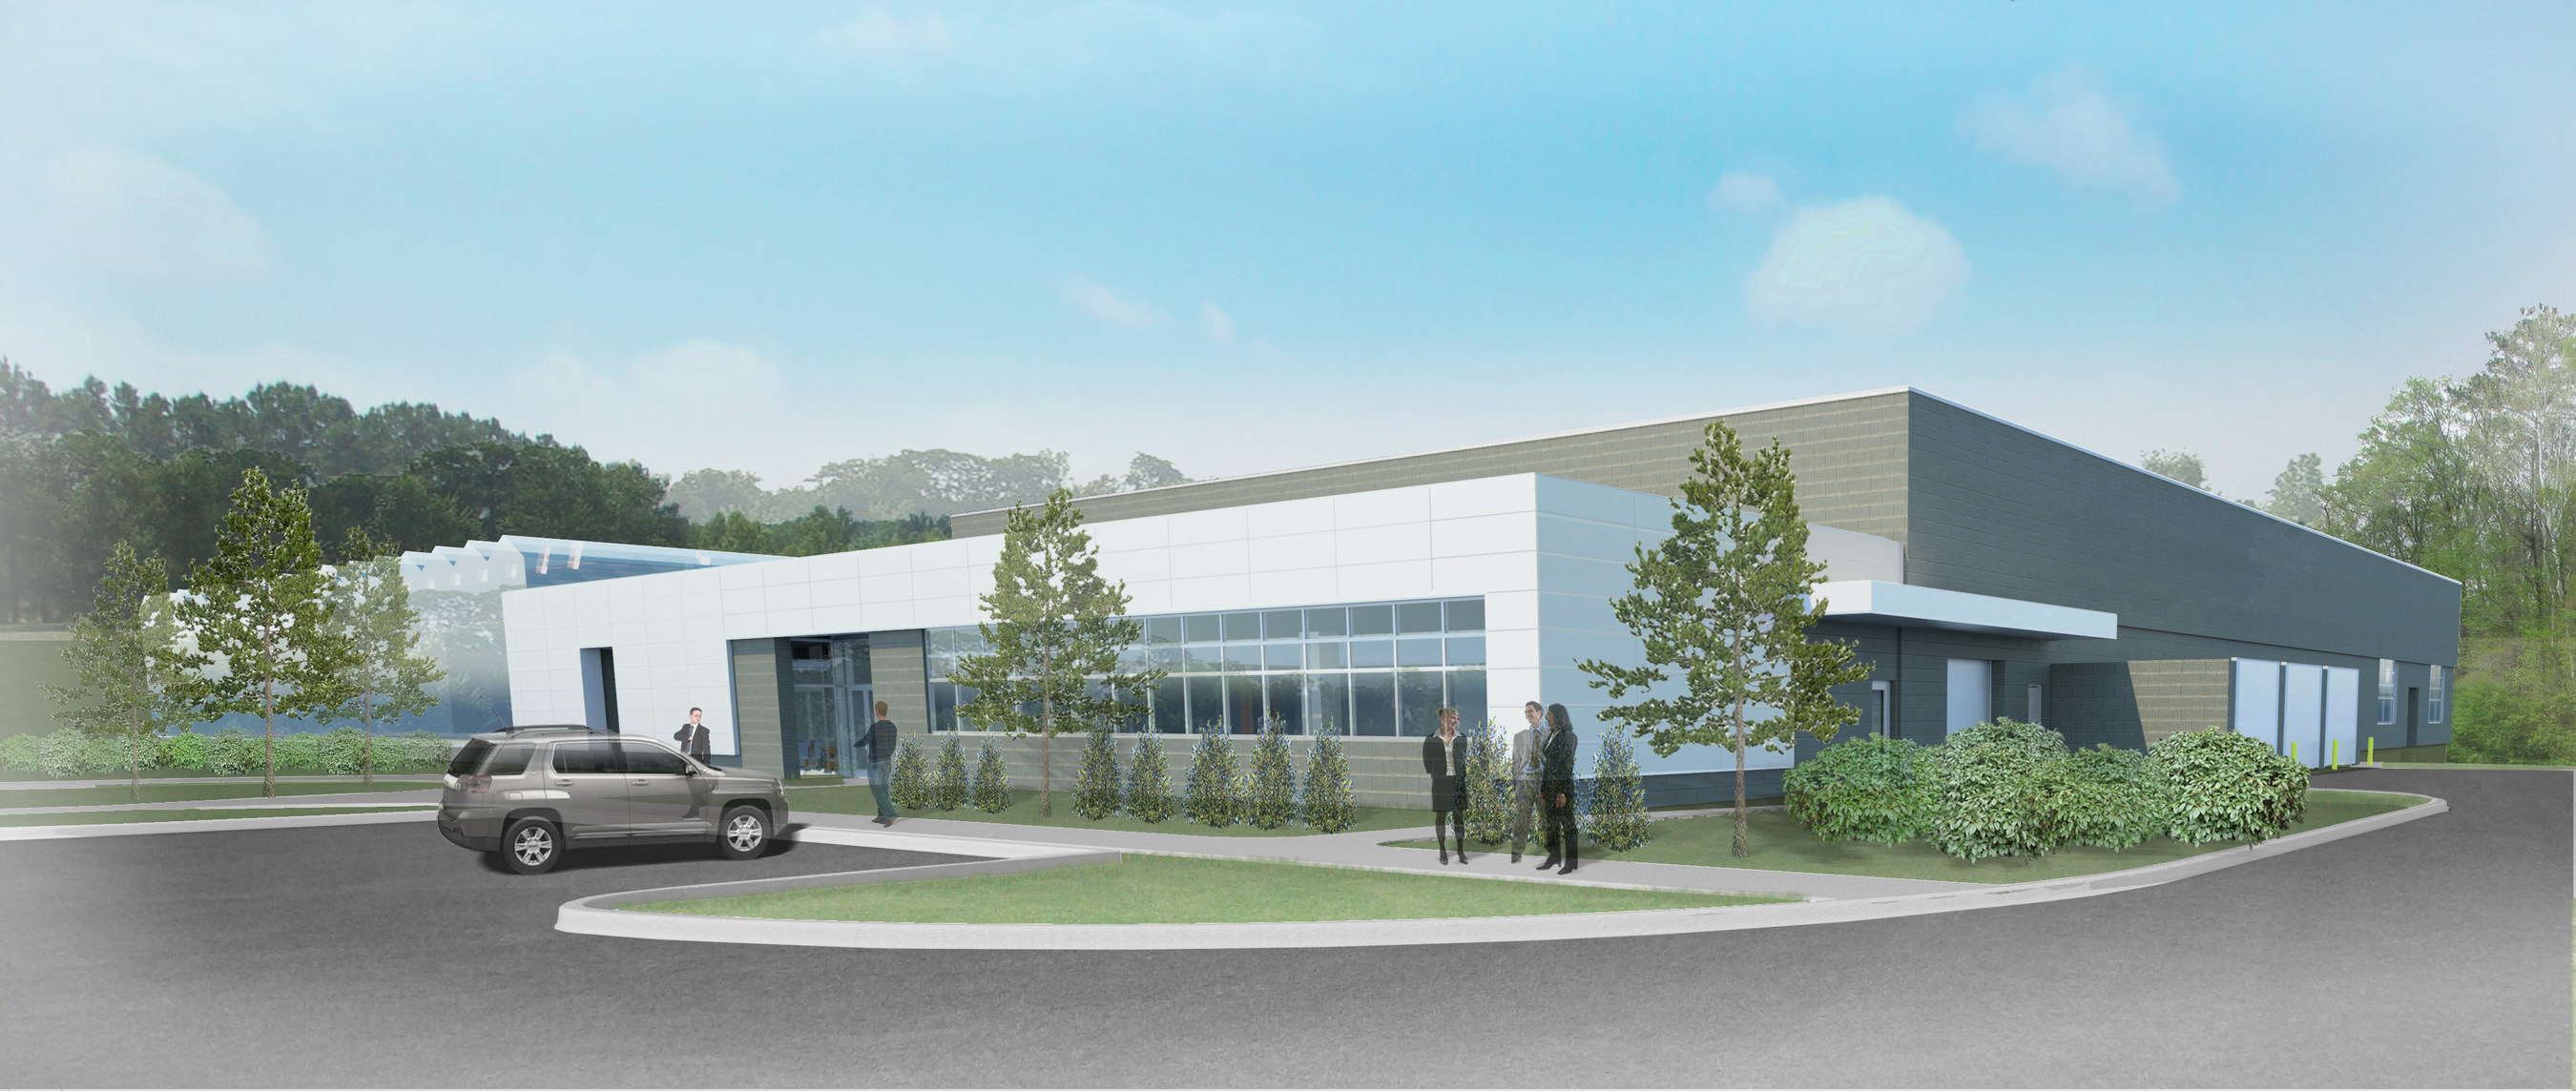 Architectural rendering of Greenhouse 6, the third in a trio of new, state-of-the-art facilities at the Bayer CropScience Research Triangle Park headquarters. Greenhouse 6 will increase Bayer's capabilities to analyze and develop crops, and find novel seeds and traits that will ultimately lead to solving farmers' greatest challenges.